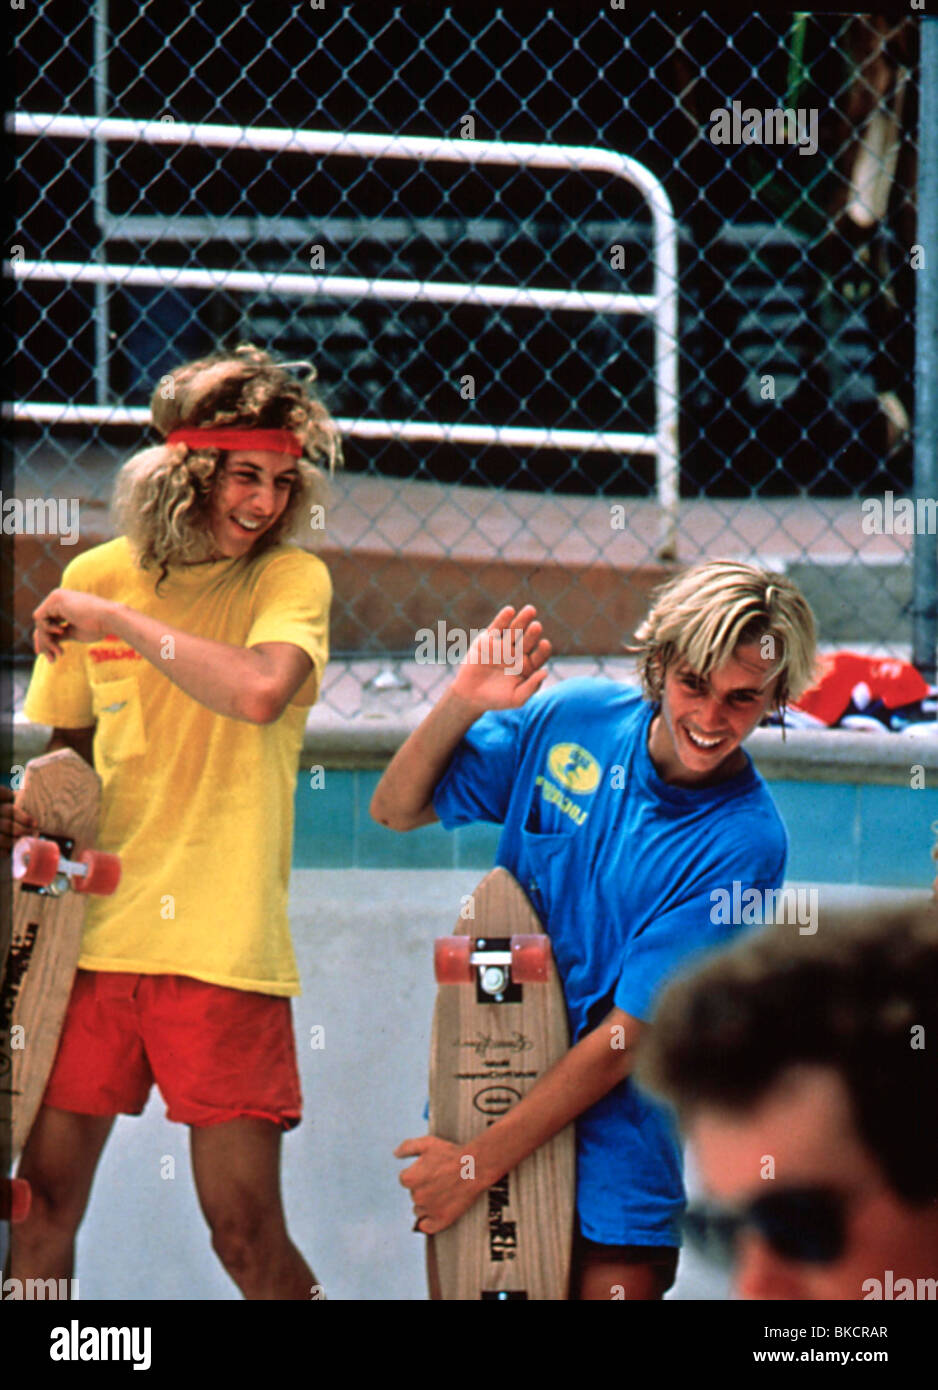 watch lords of dogtown online free 123movies